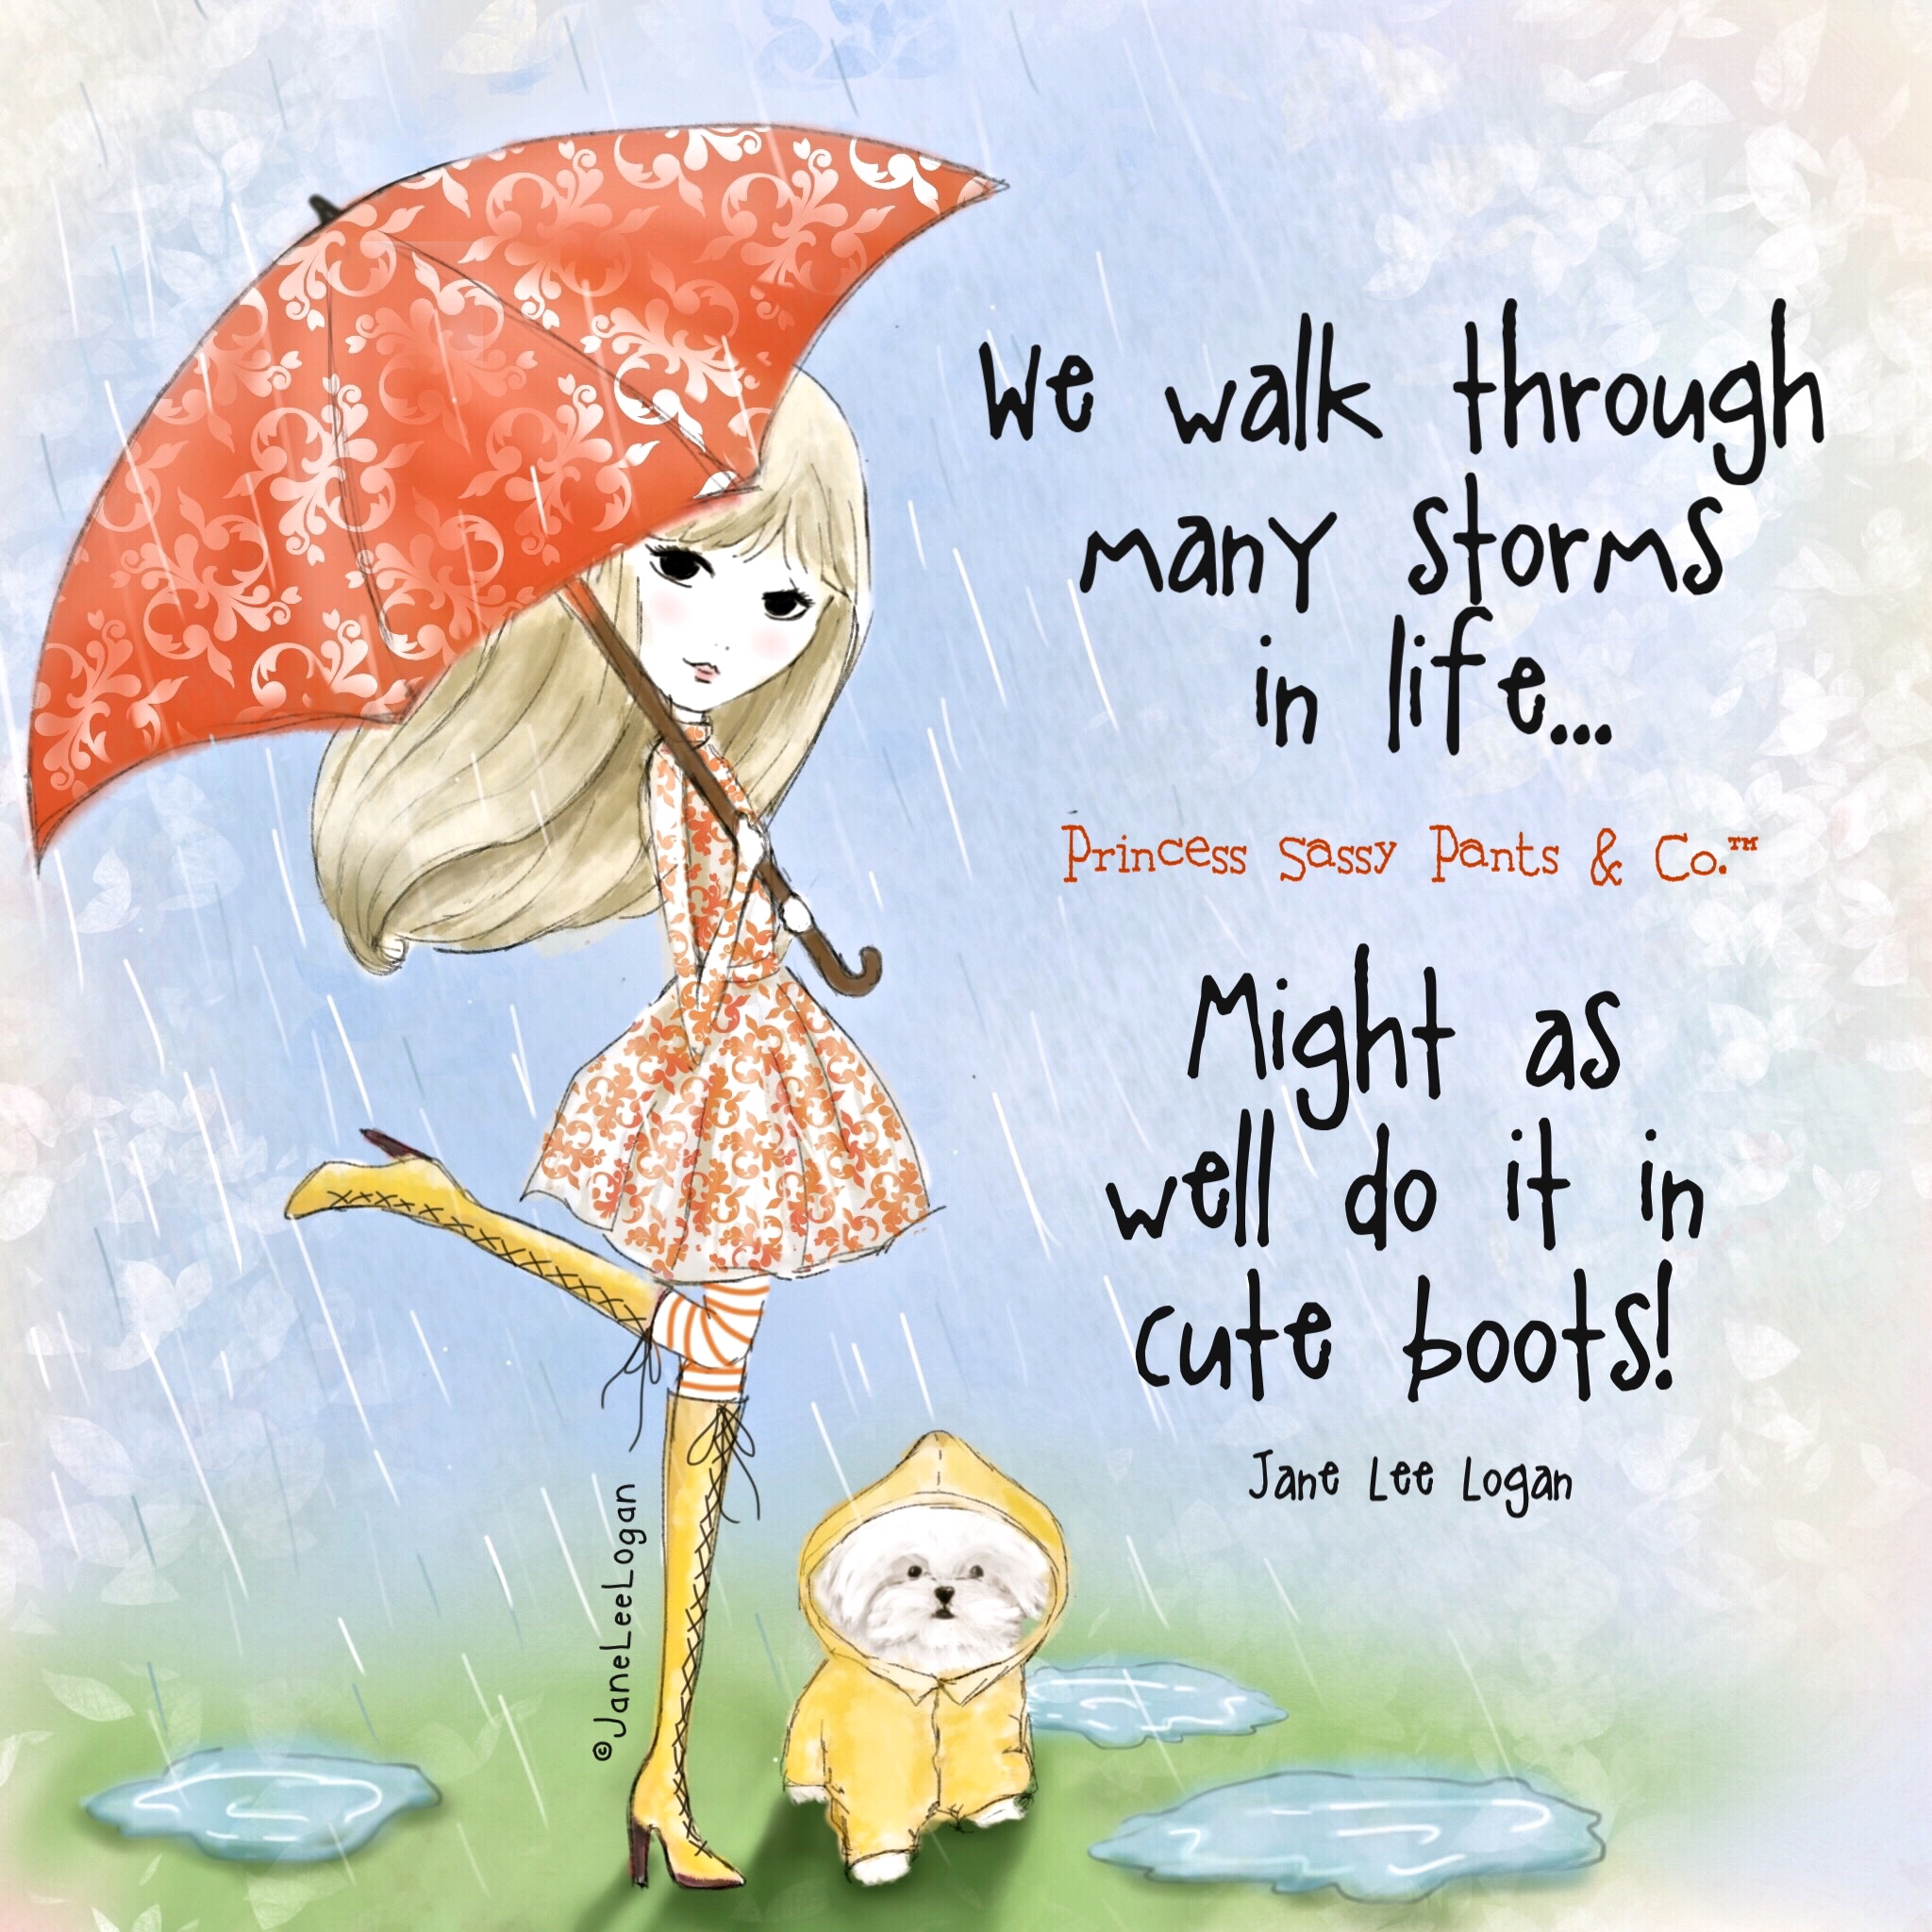 Cute Rainy Day Quotes: We Walk Through Many Storms In Life…Might As Well Do It In